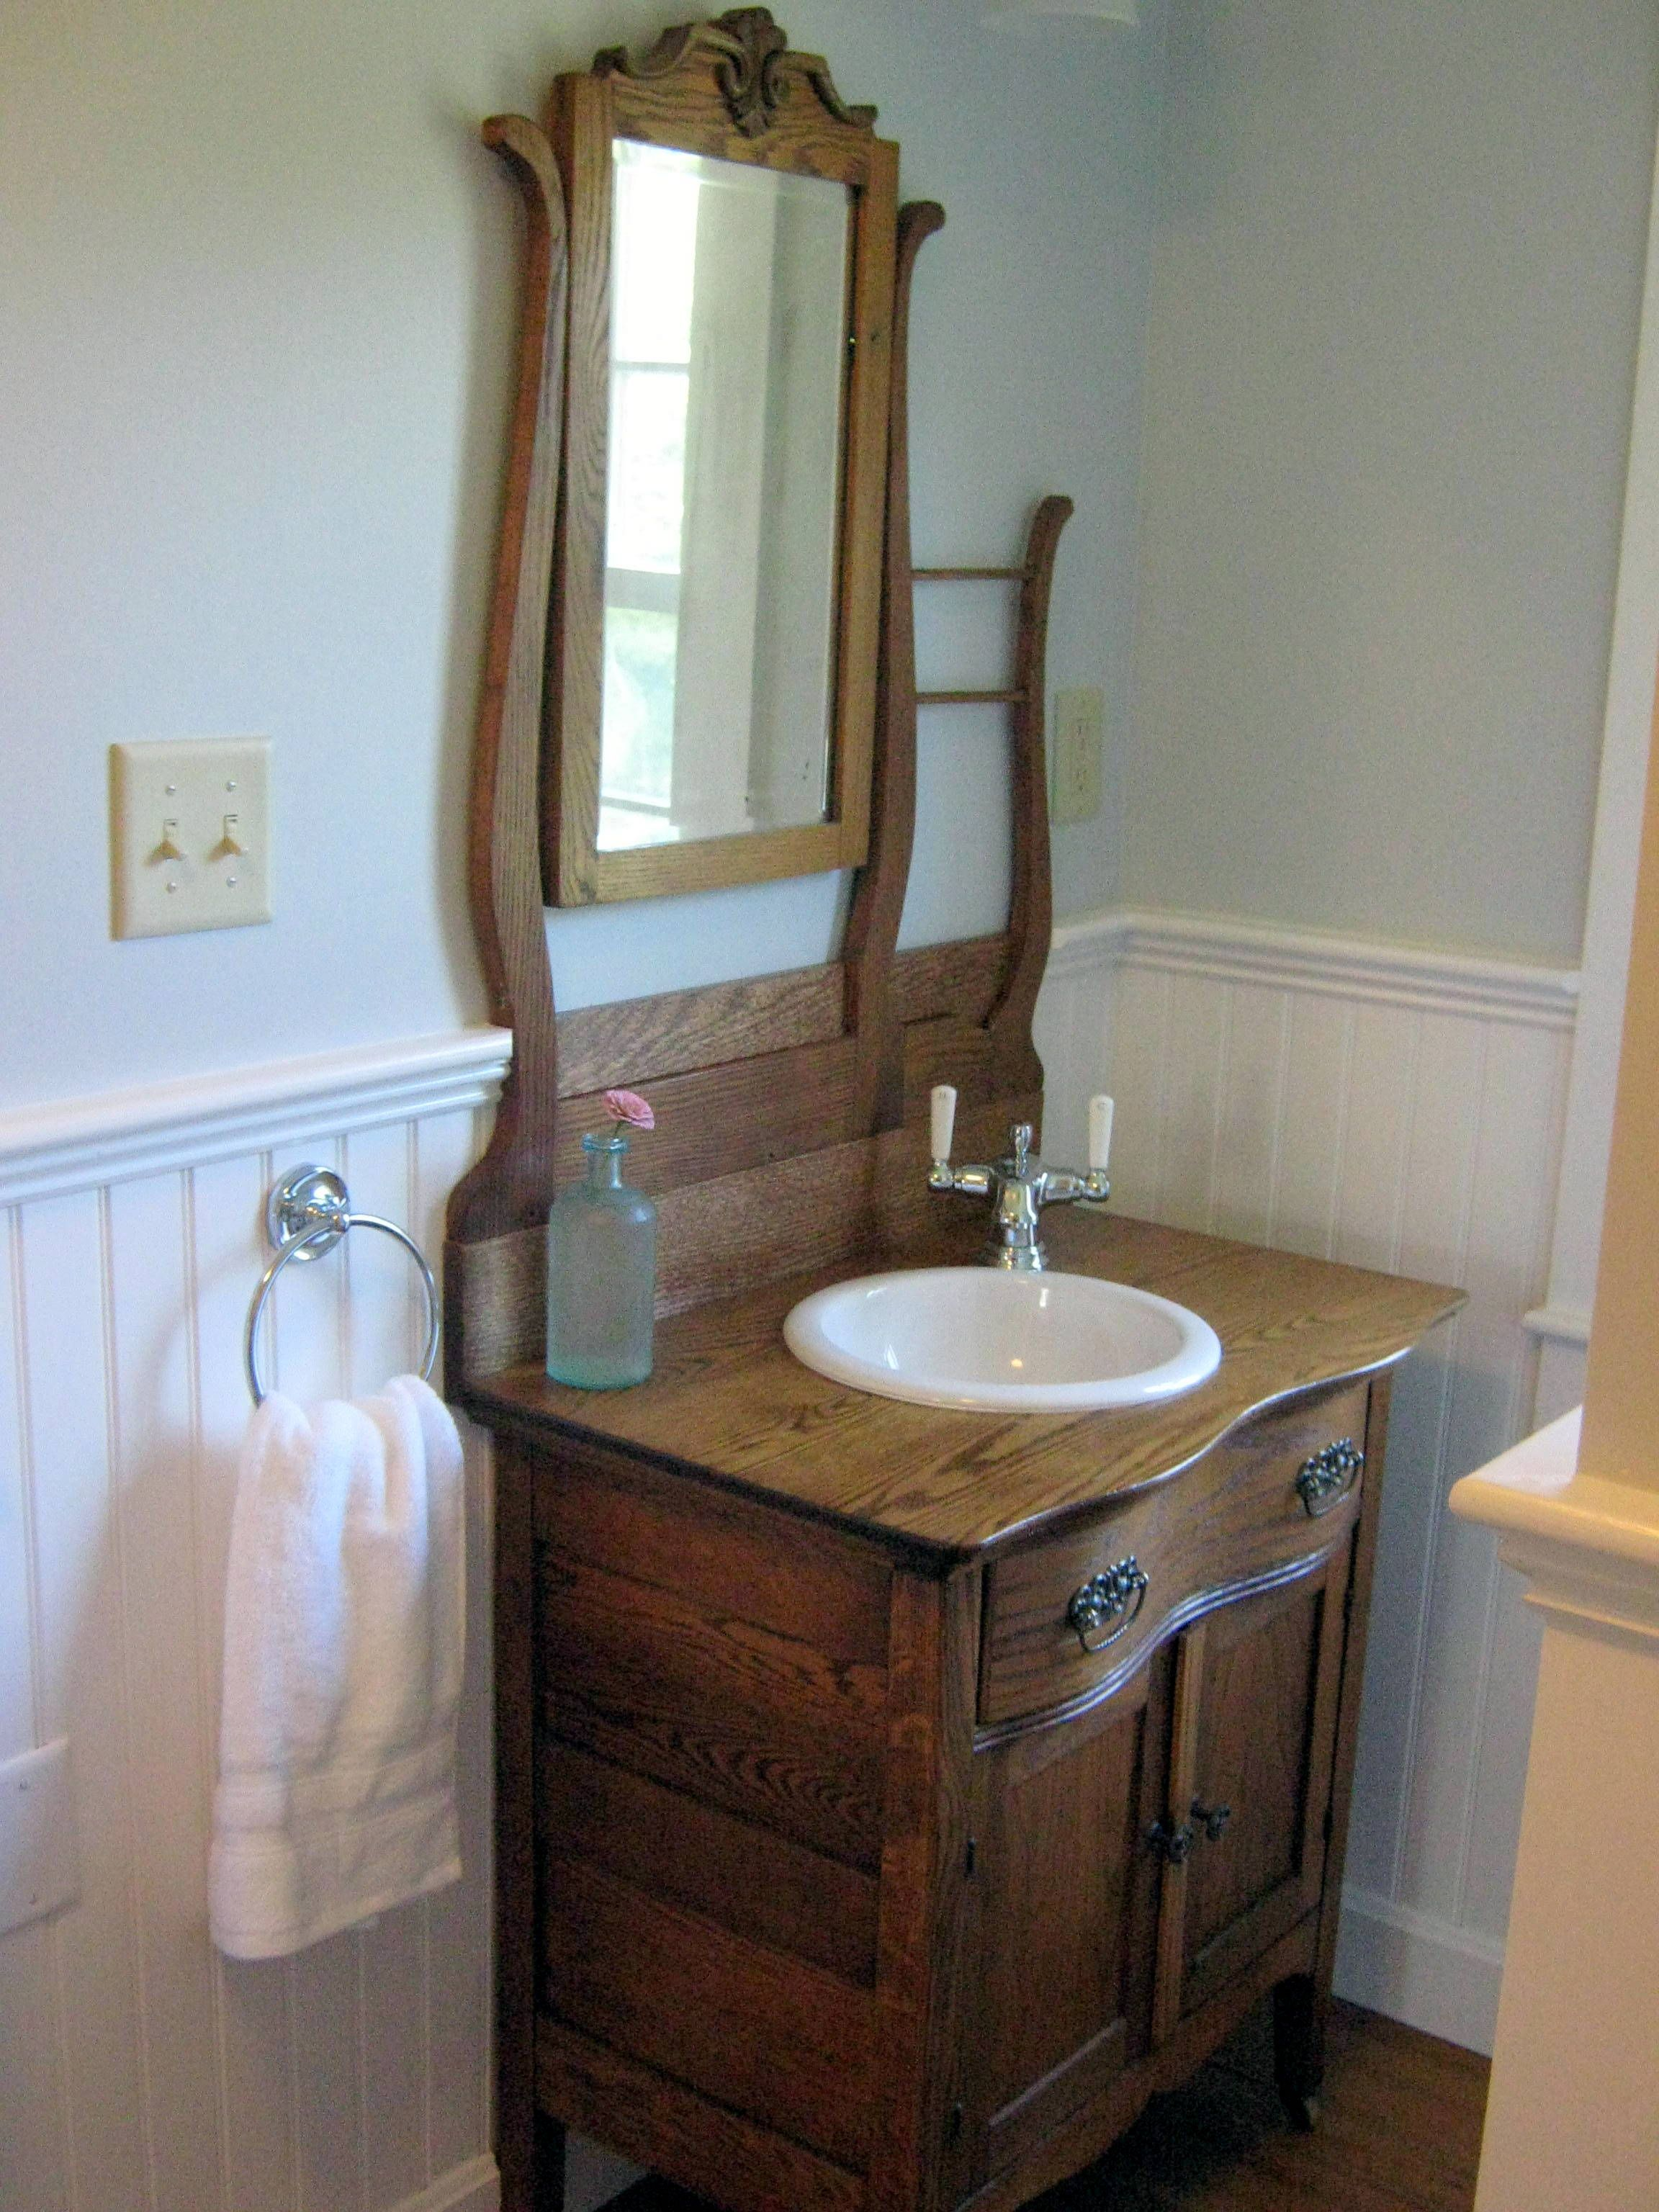 Antique Oak Hotel Commode Re Purposed Into A Bathroom Vanity Just Had To Raise The Mirror To An Appropriate Eye Level Still Hope They U Unique Bathroom Vanity